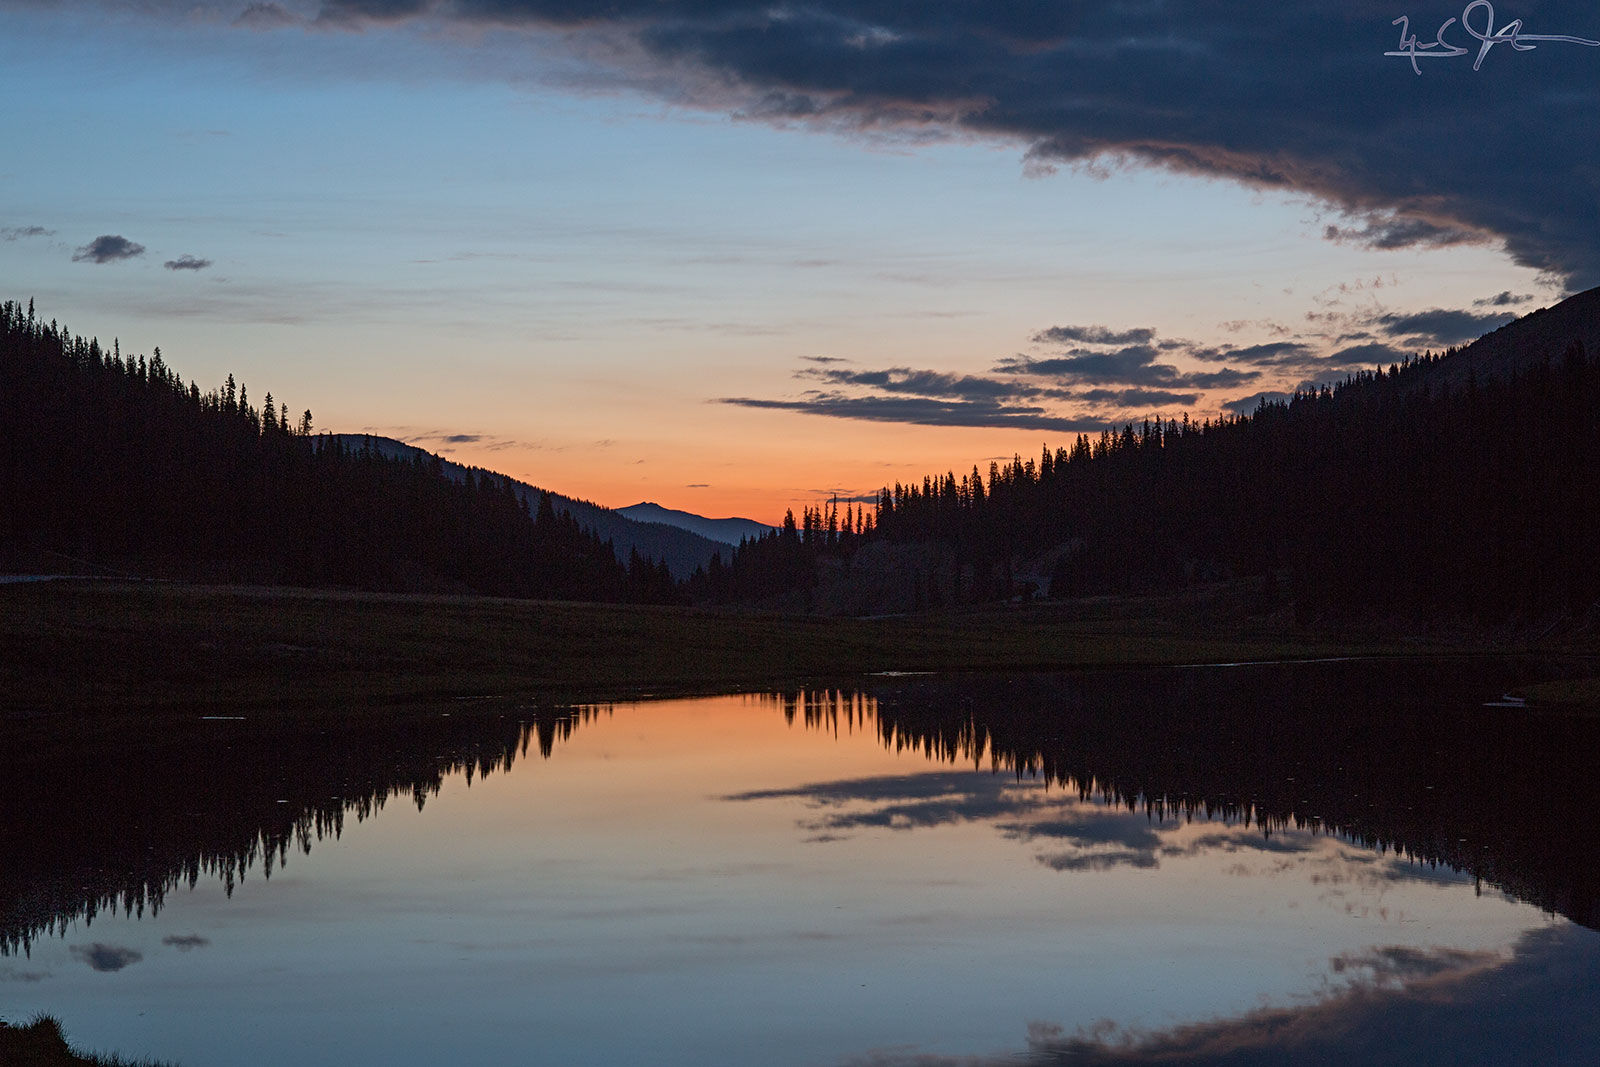 Starting point - Poudre Lake at dawn.